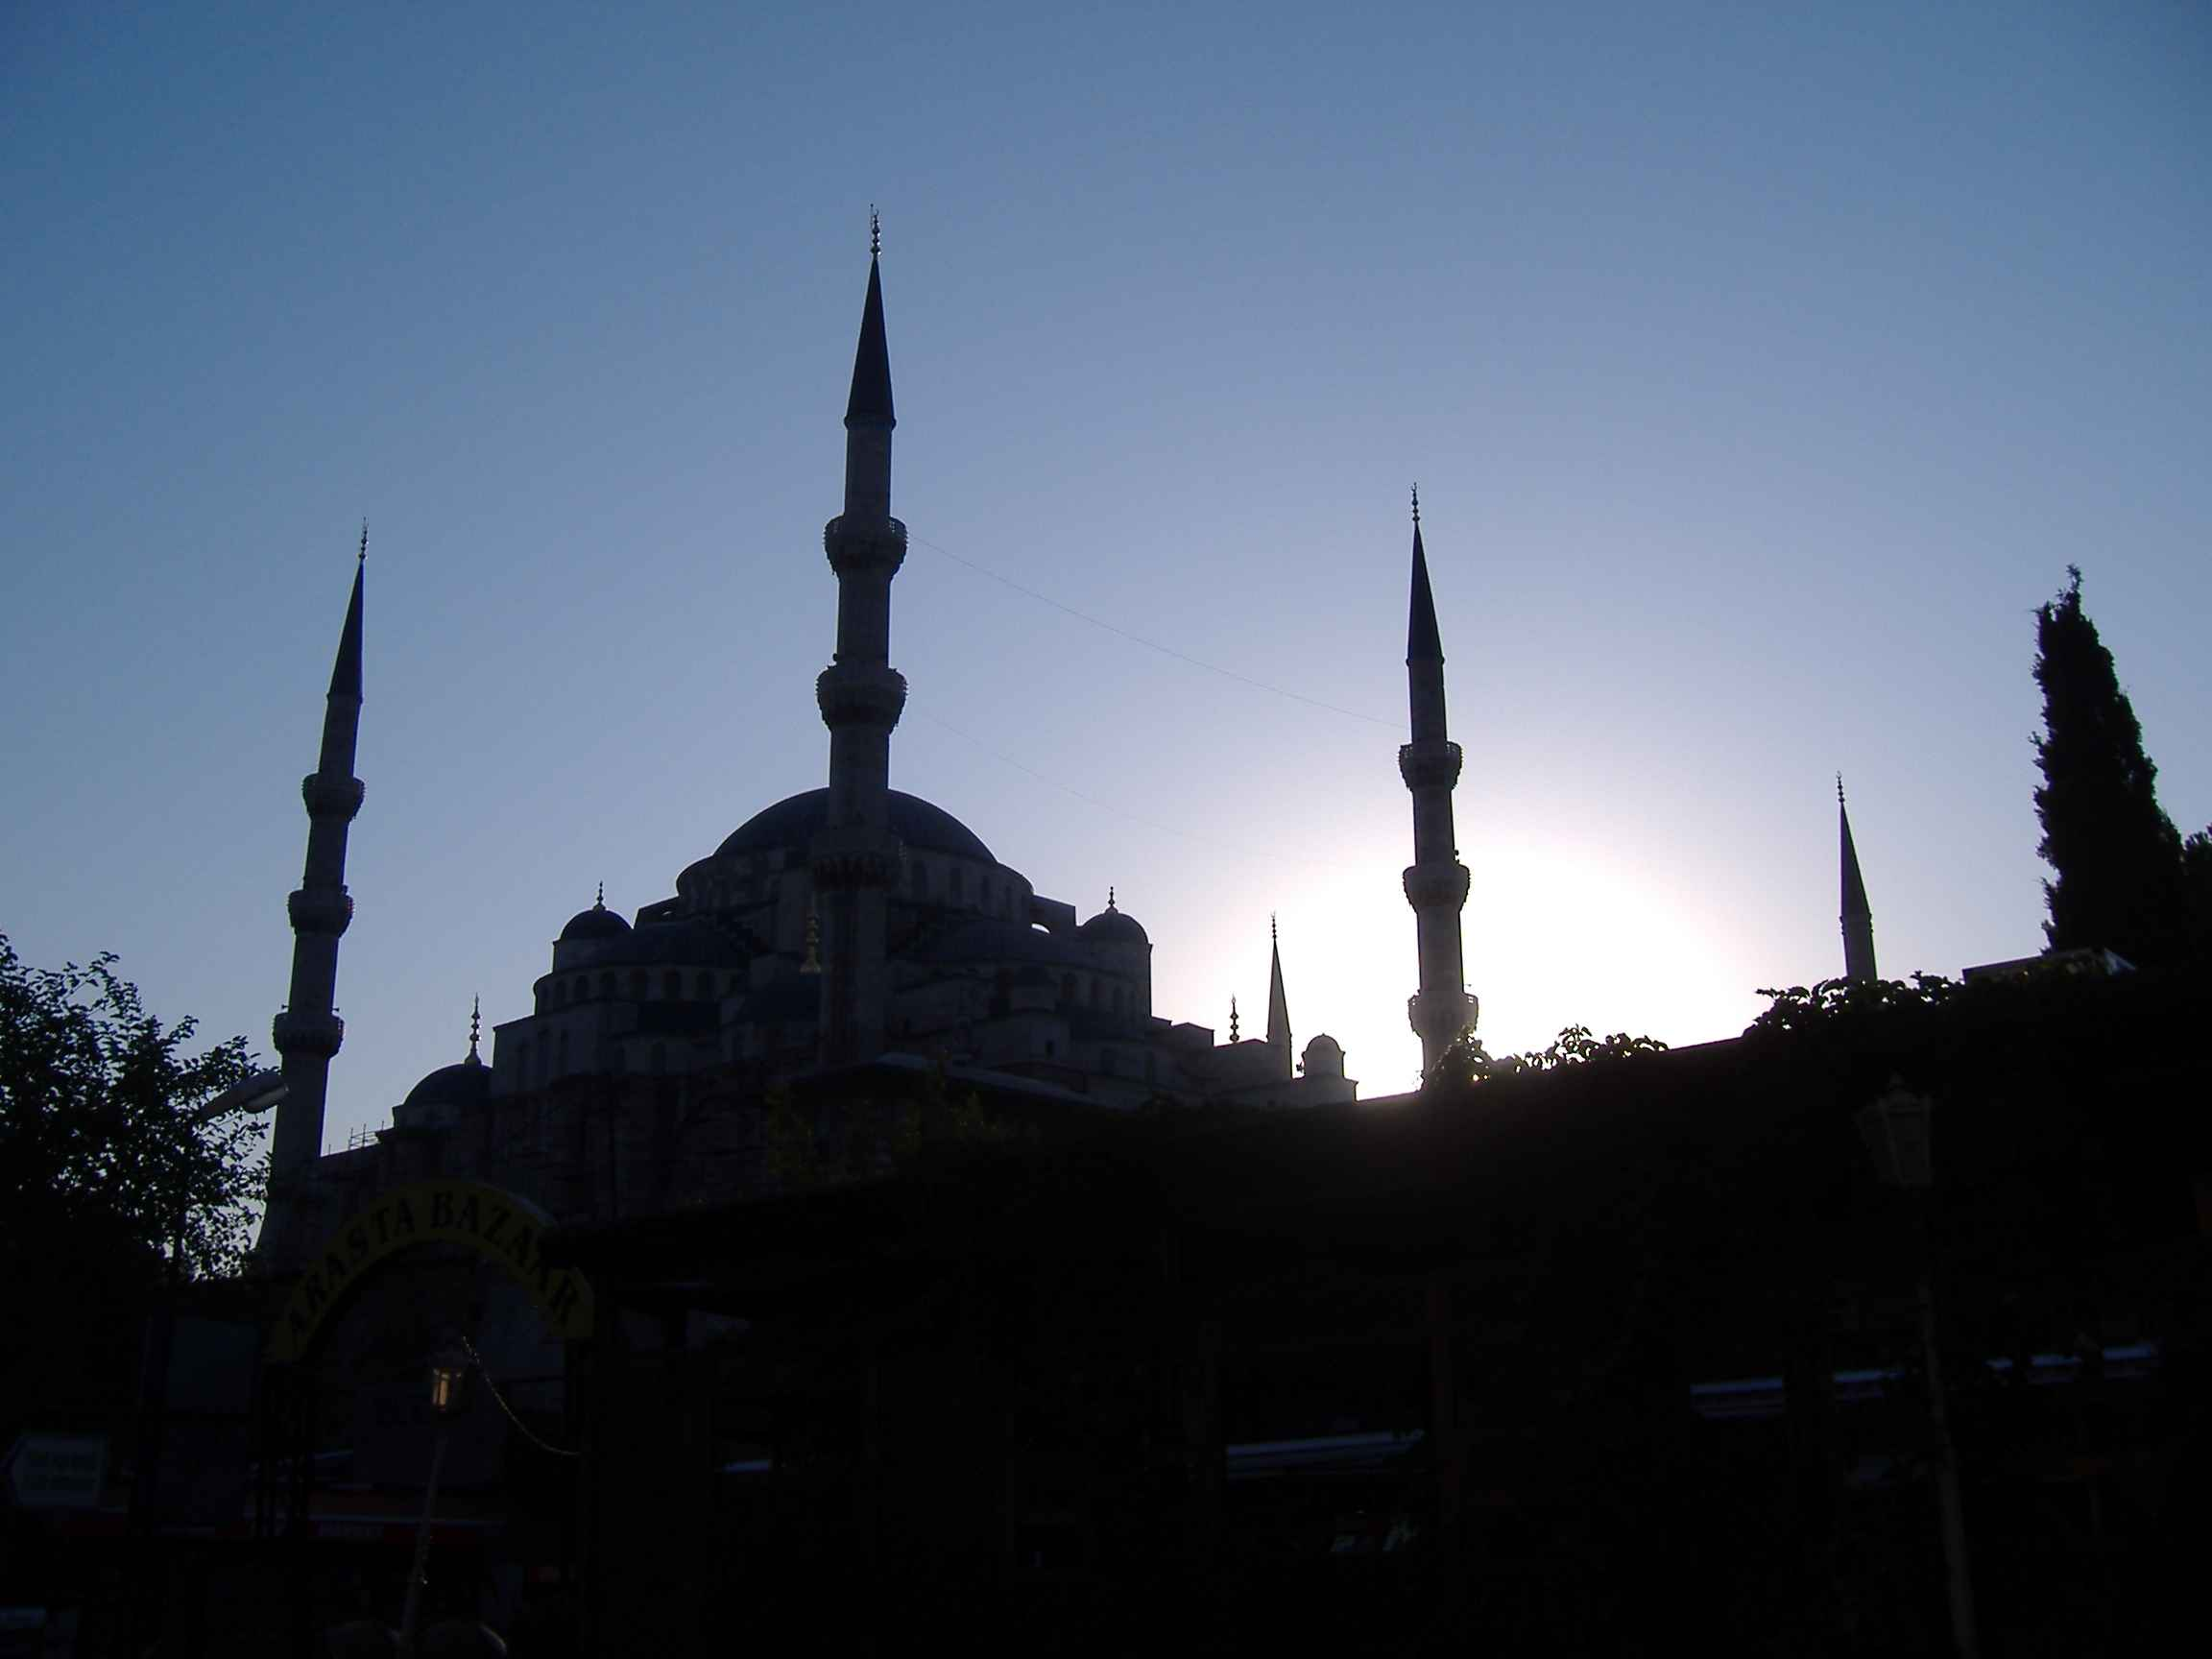 An August evening at Sultanahmet's blue mosque